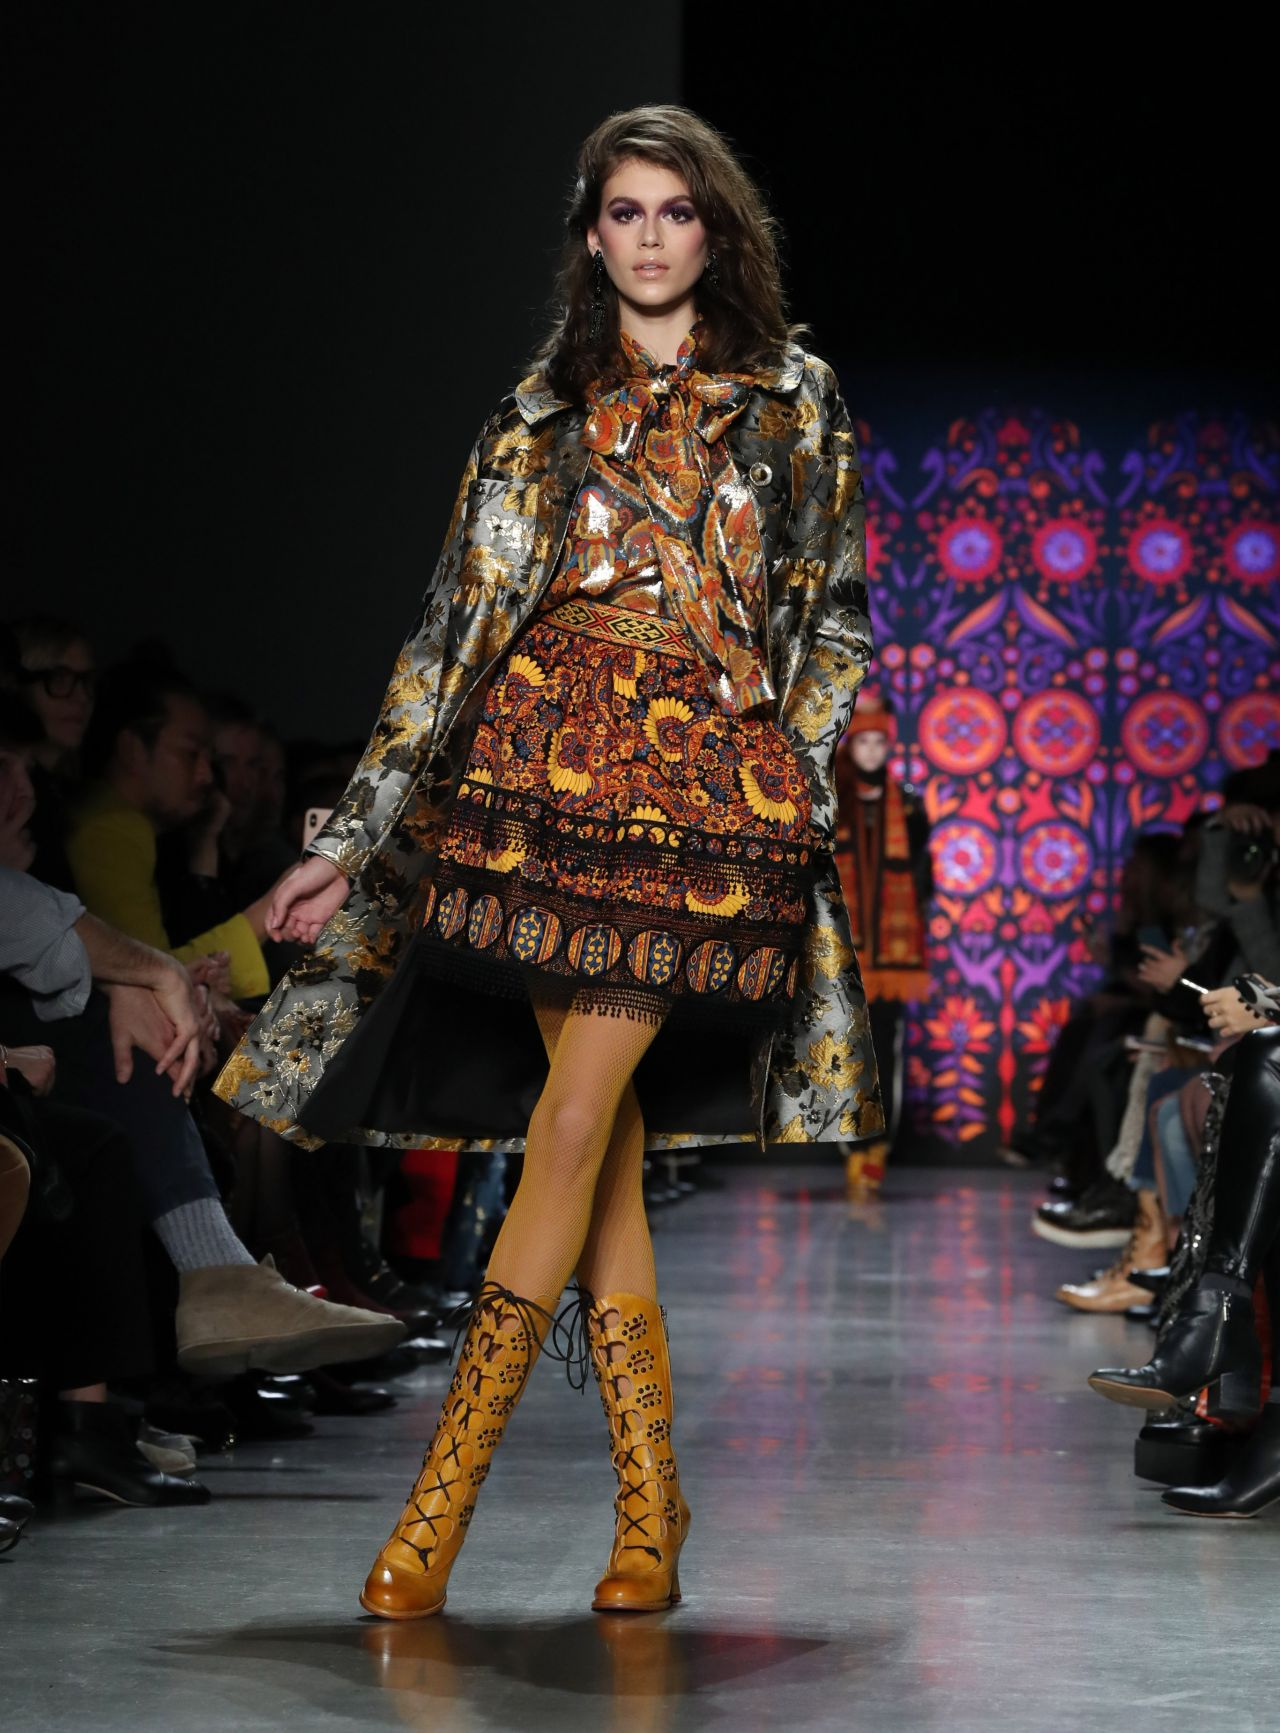 Fhions: Kaia Gerber Walks Anna Sui Fashion Show In NYC